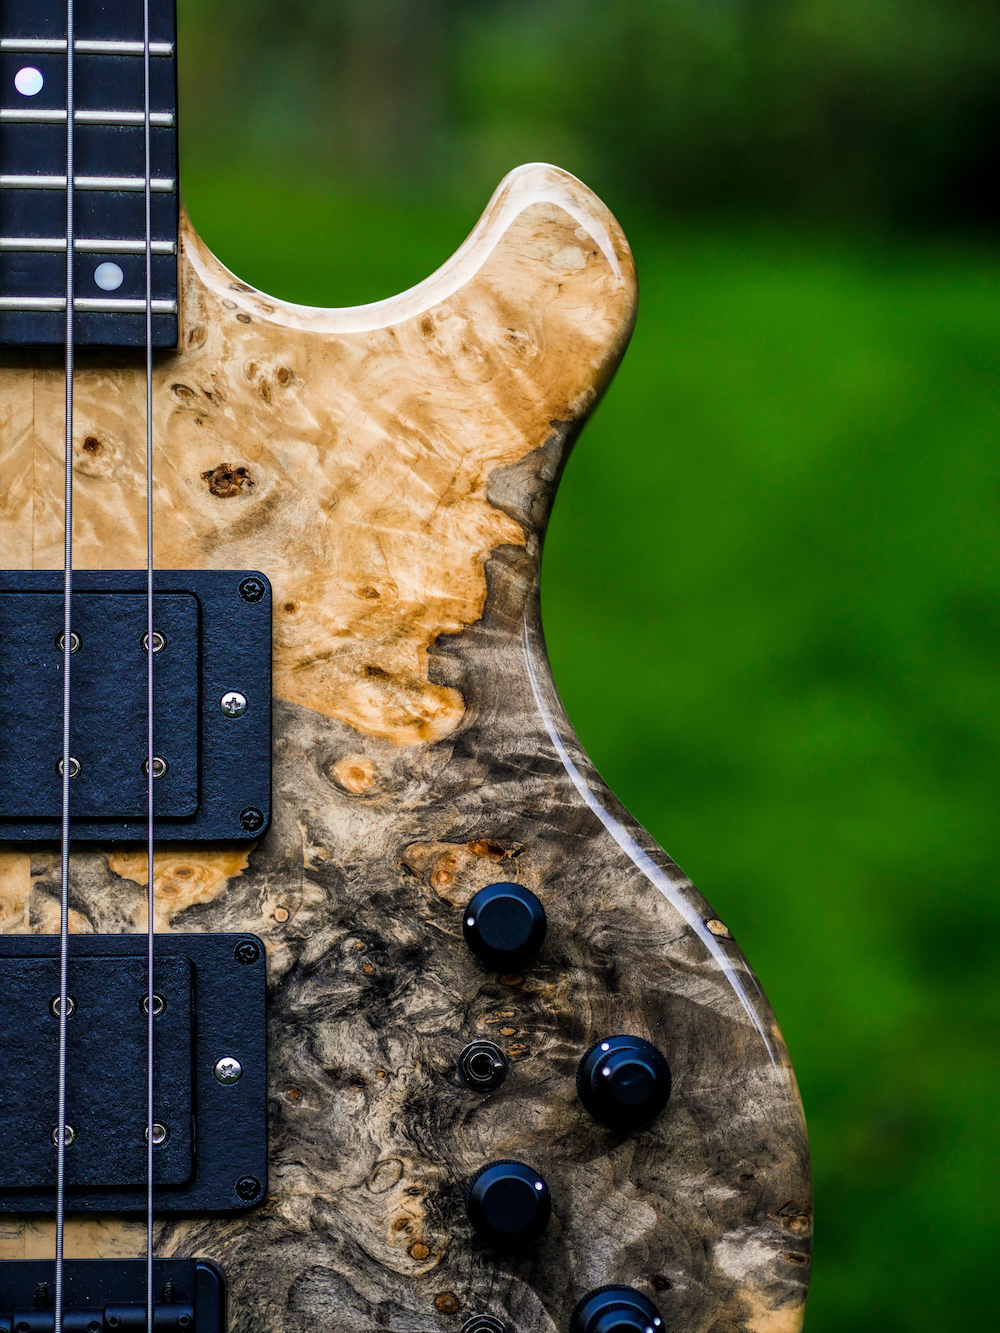 Exotic Tops - Swamp ash, alder or khaya mahogany for the body, combined with fine top wood such as Buckeye Burl, Poplar Burl or Quilted Maple.